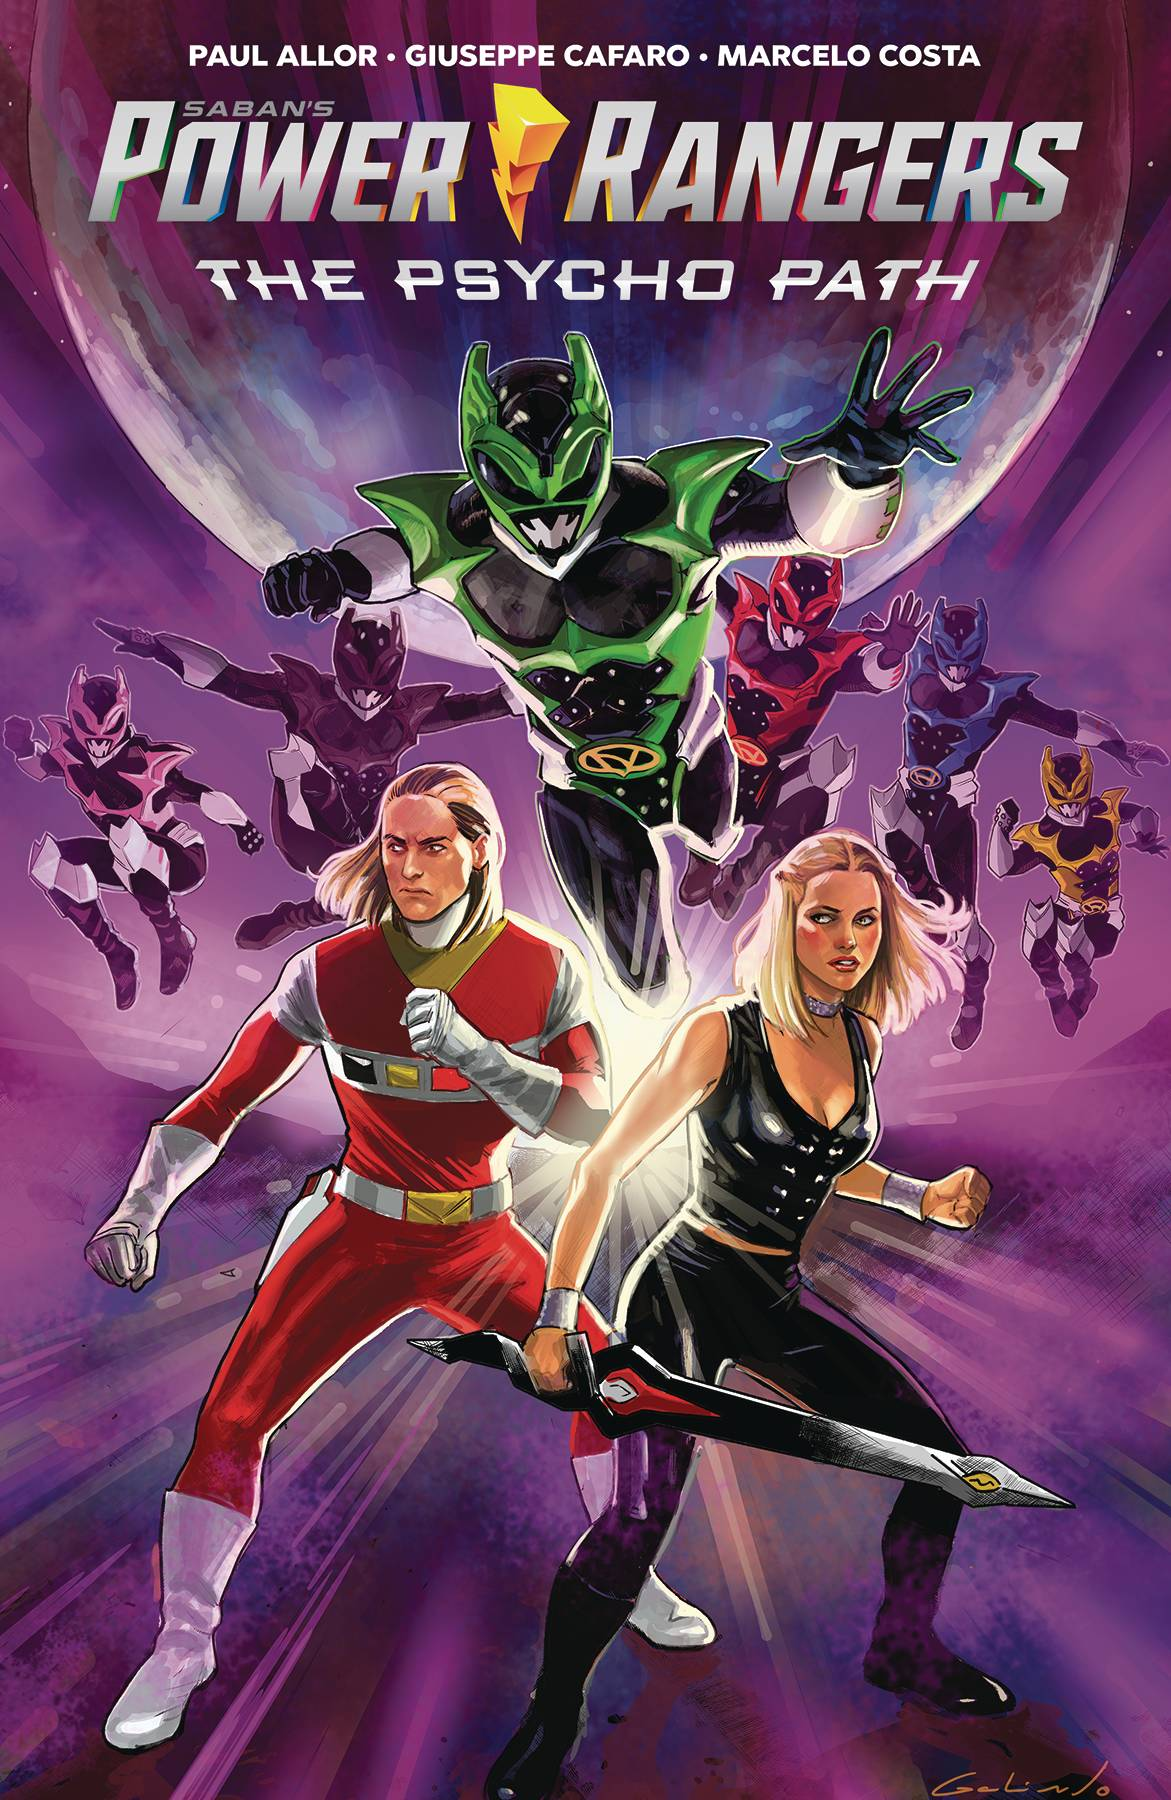 Power Rangers: The Psycho Path - Original Graphic Novel